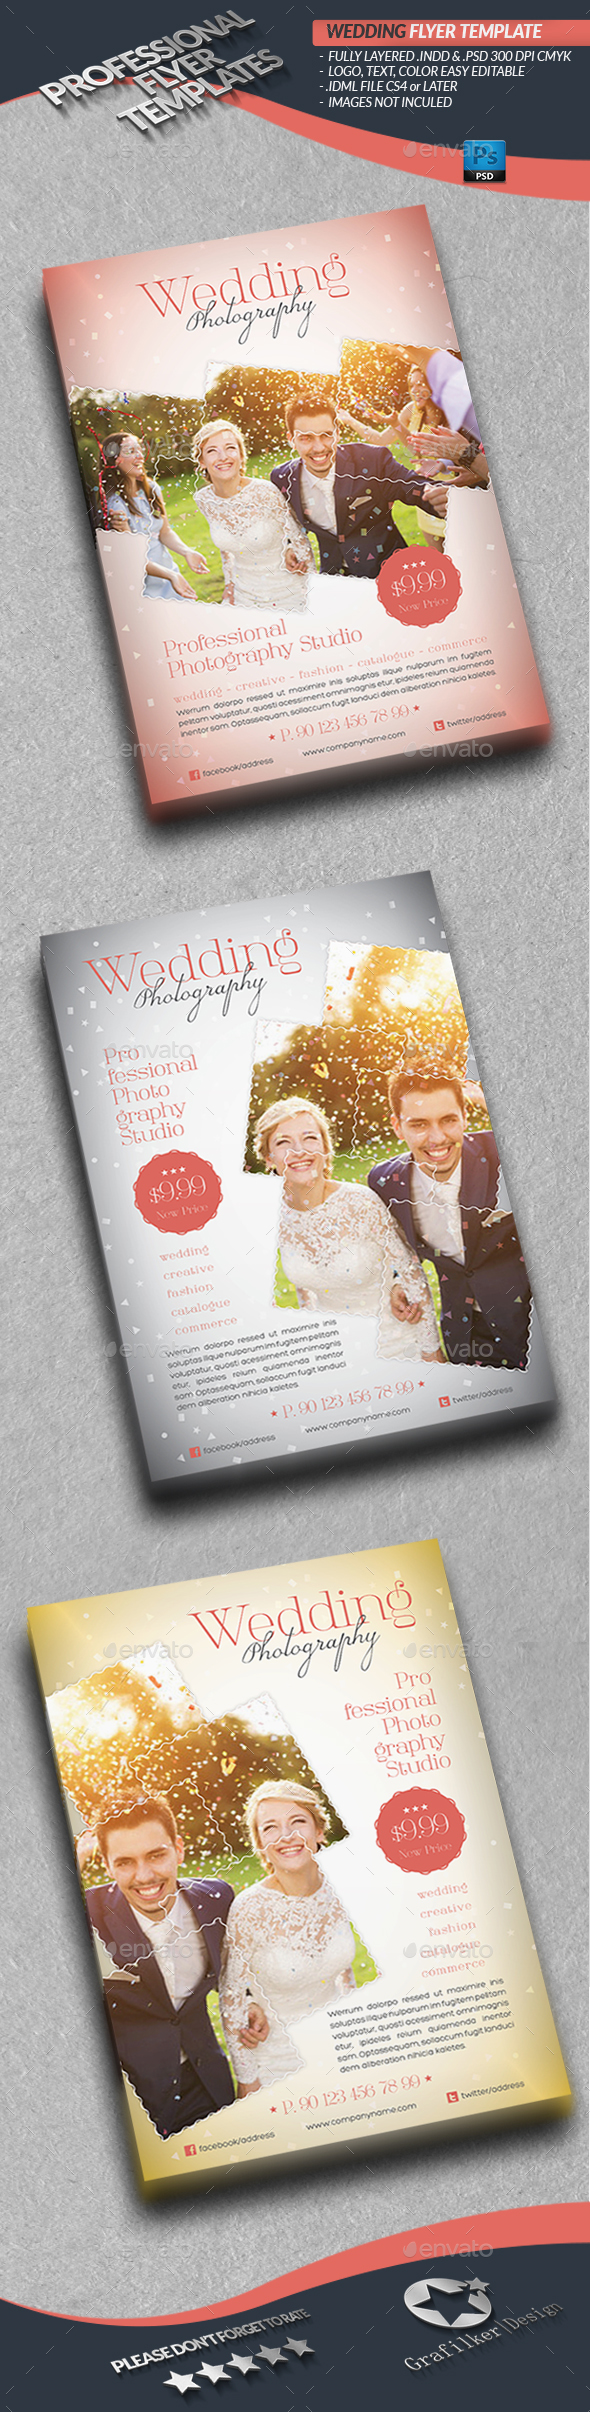 Wedding Photography Flyer Template - Corporate Flyers